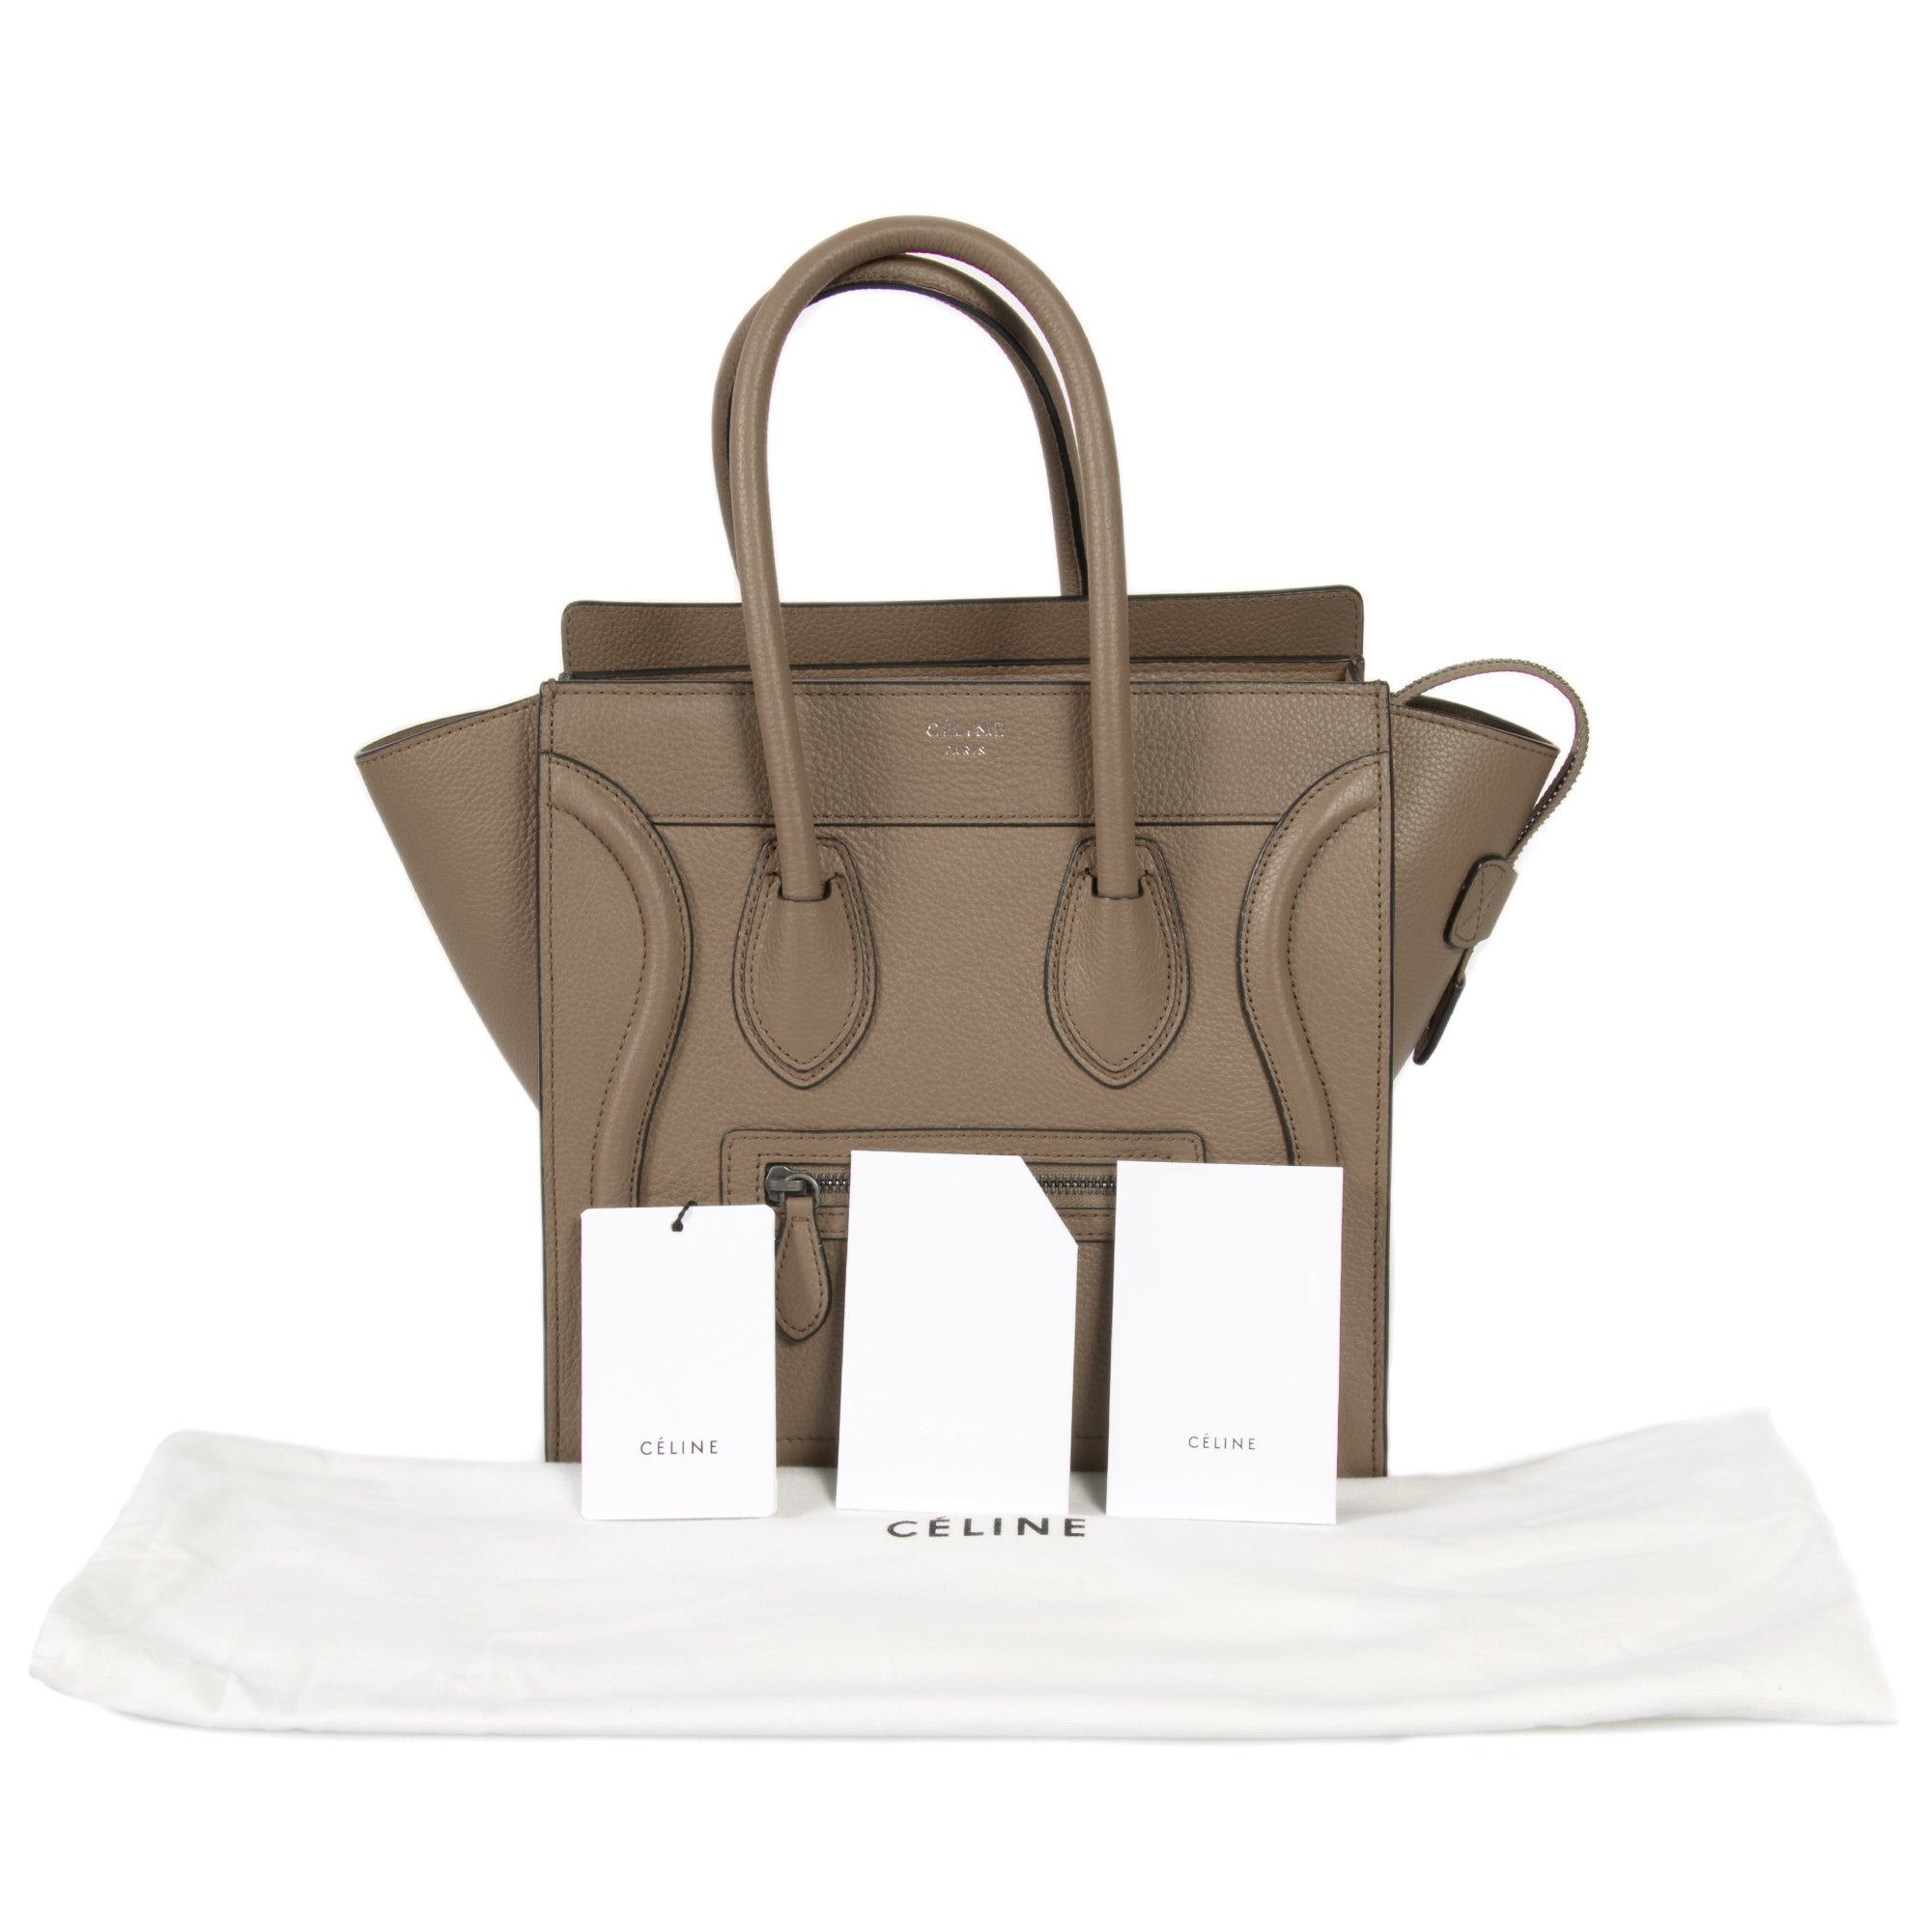 Céline Micro Luggage Tote Bag in Dune Baby Drummed Calfskin Leather